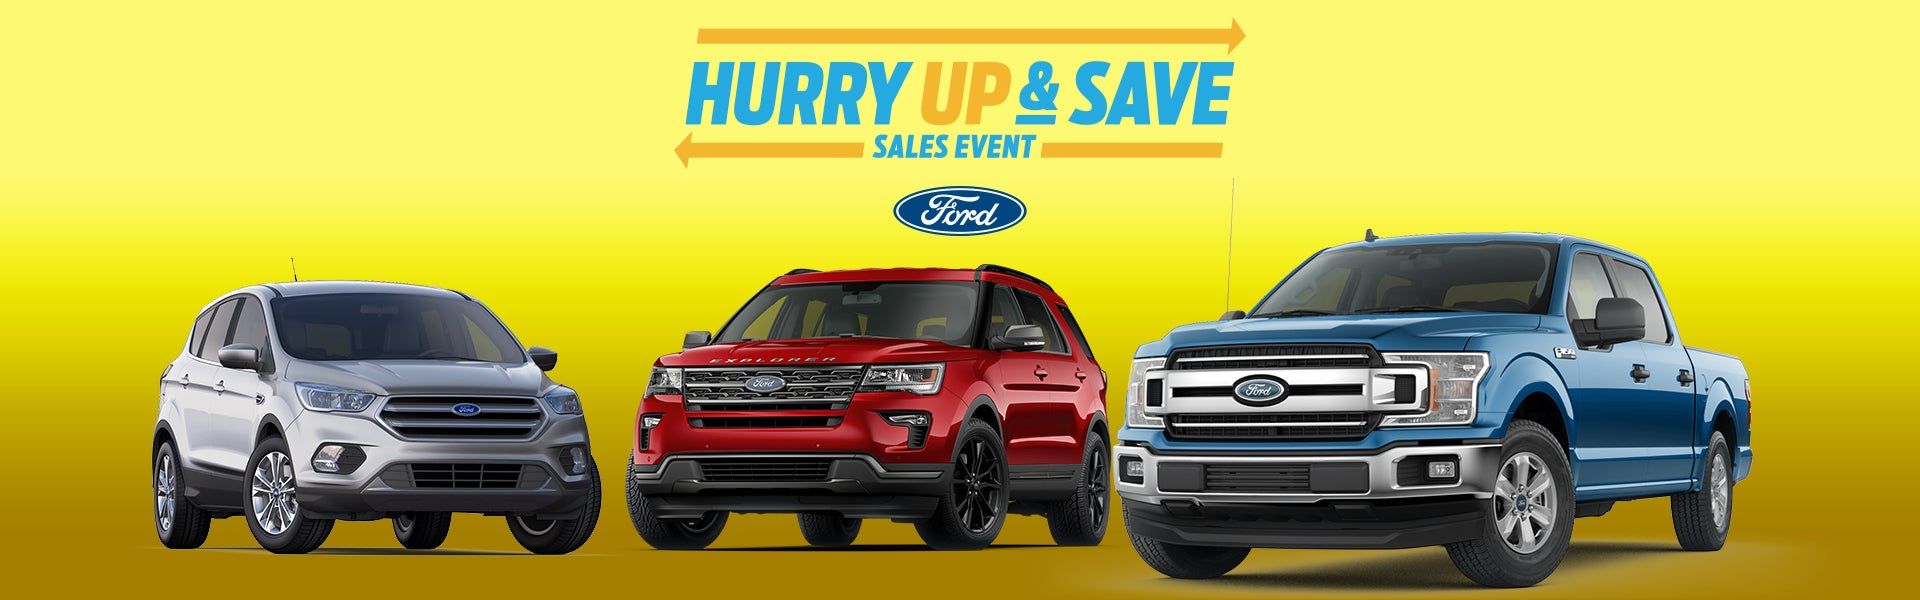 Iron City Ford New Used Ford Dealership In Birmingham Al